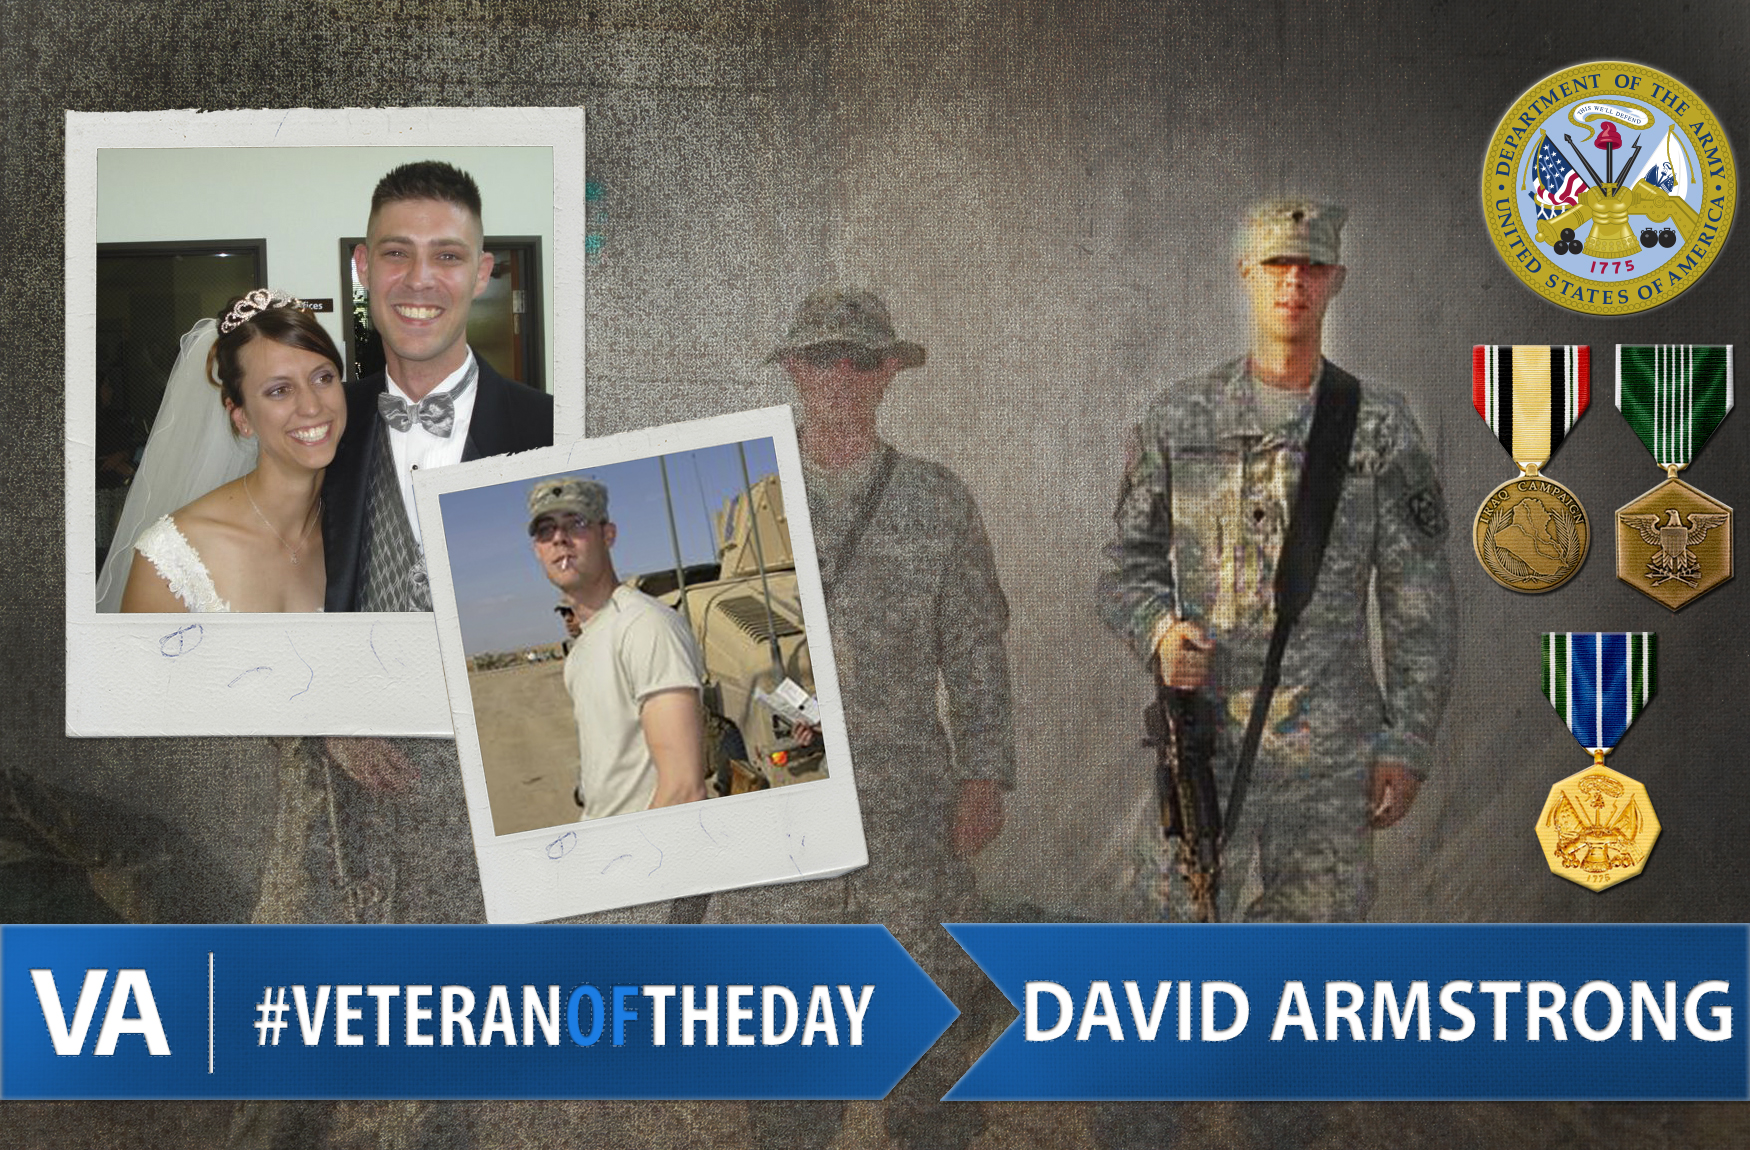 David Armstrong - Veteran of the Day